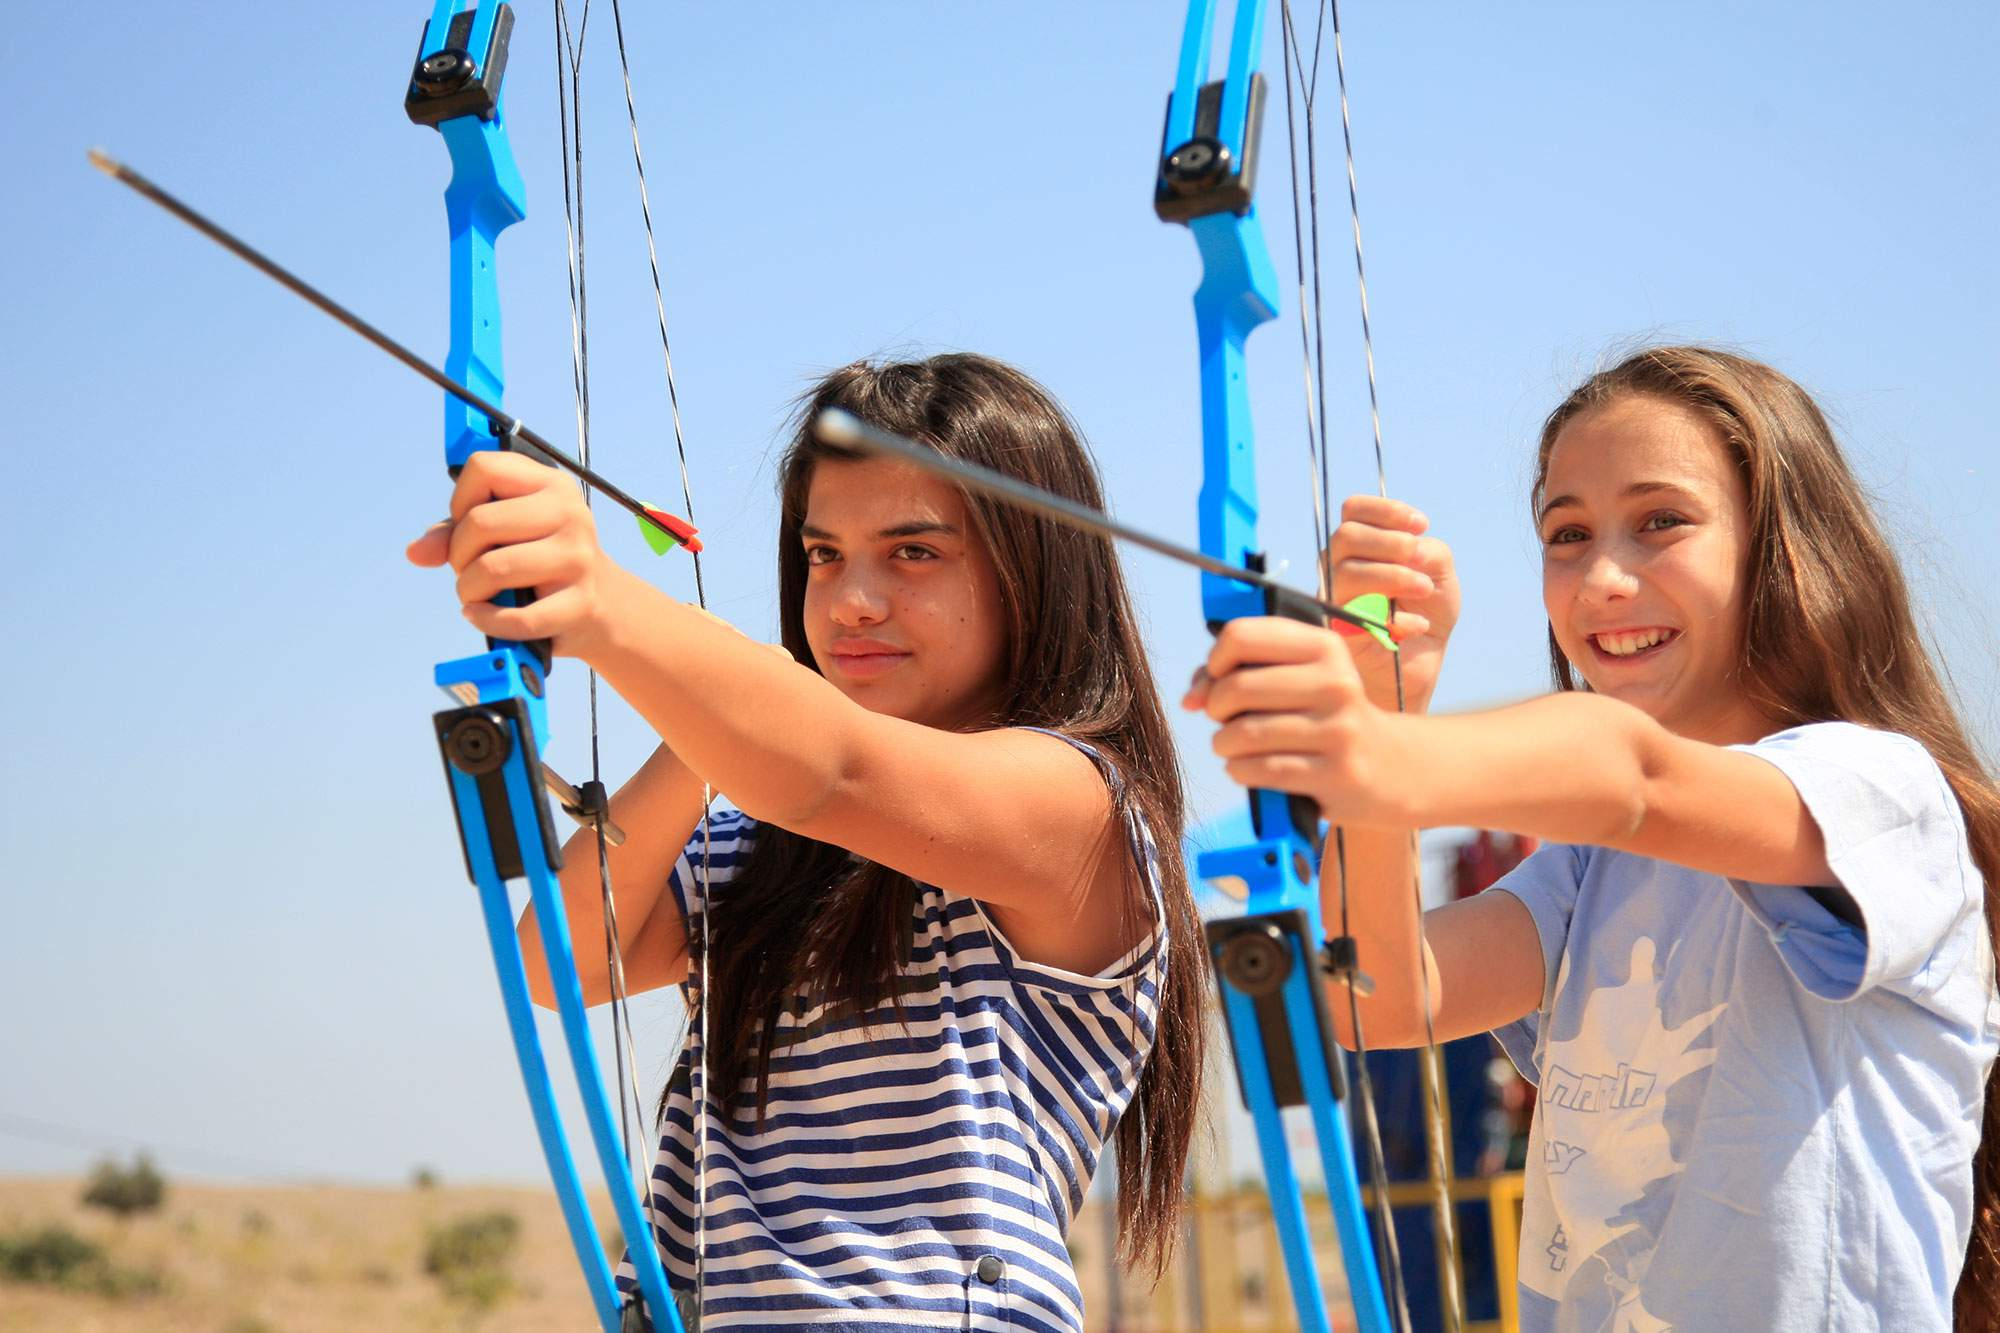 Archery at Jordan River Village